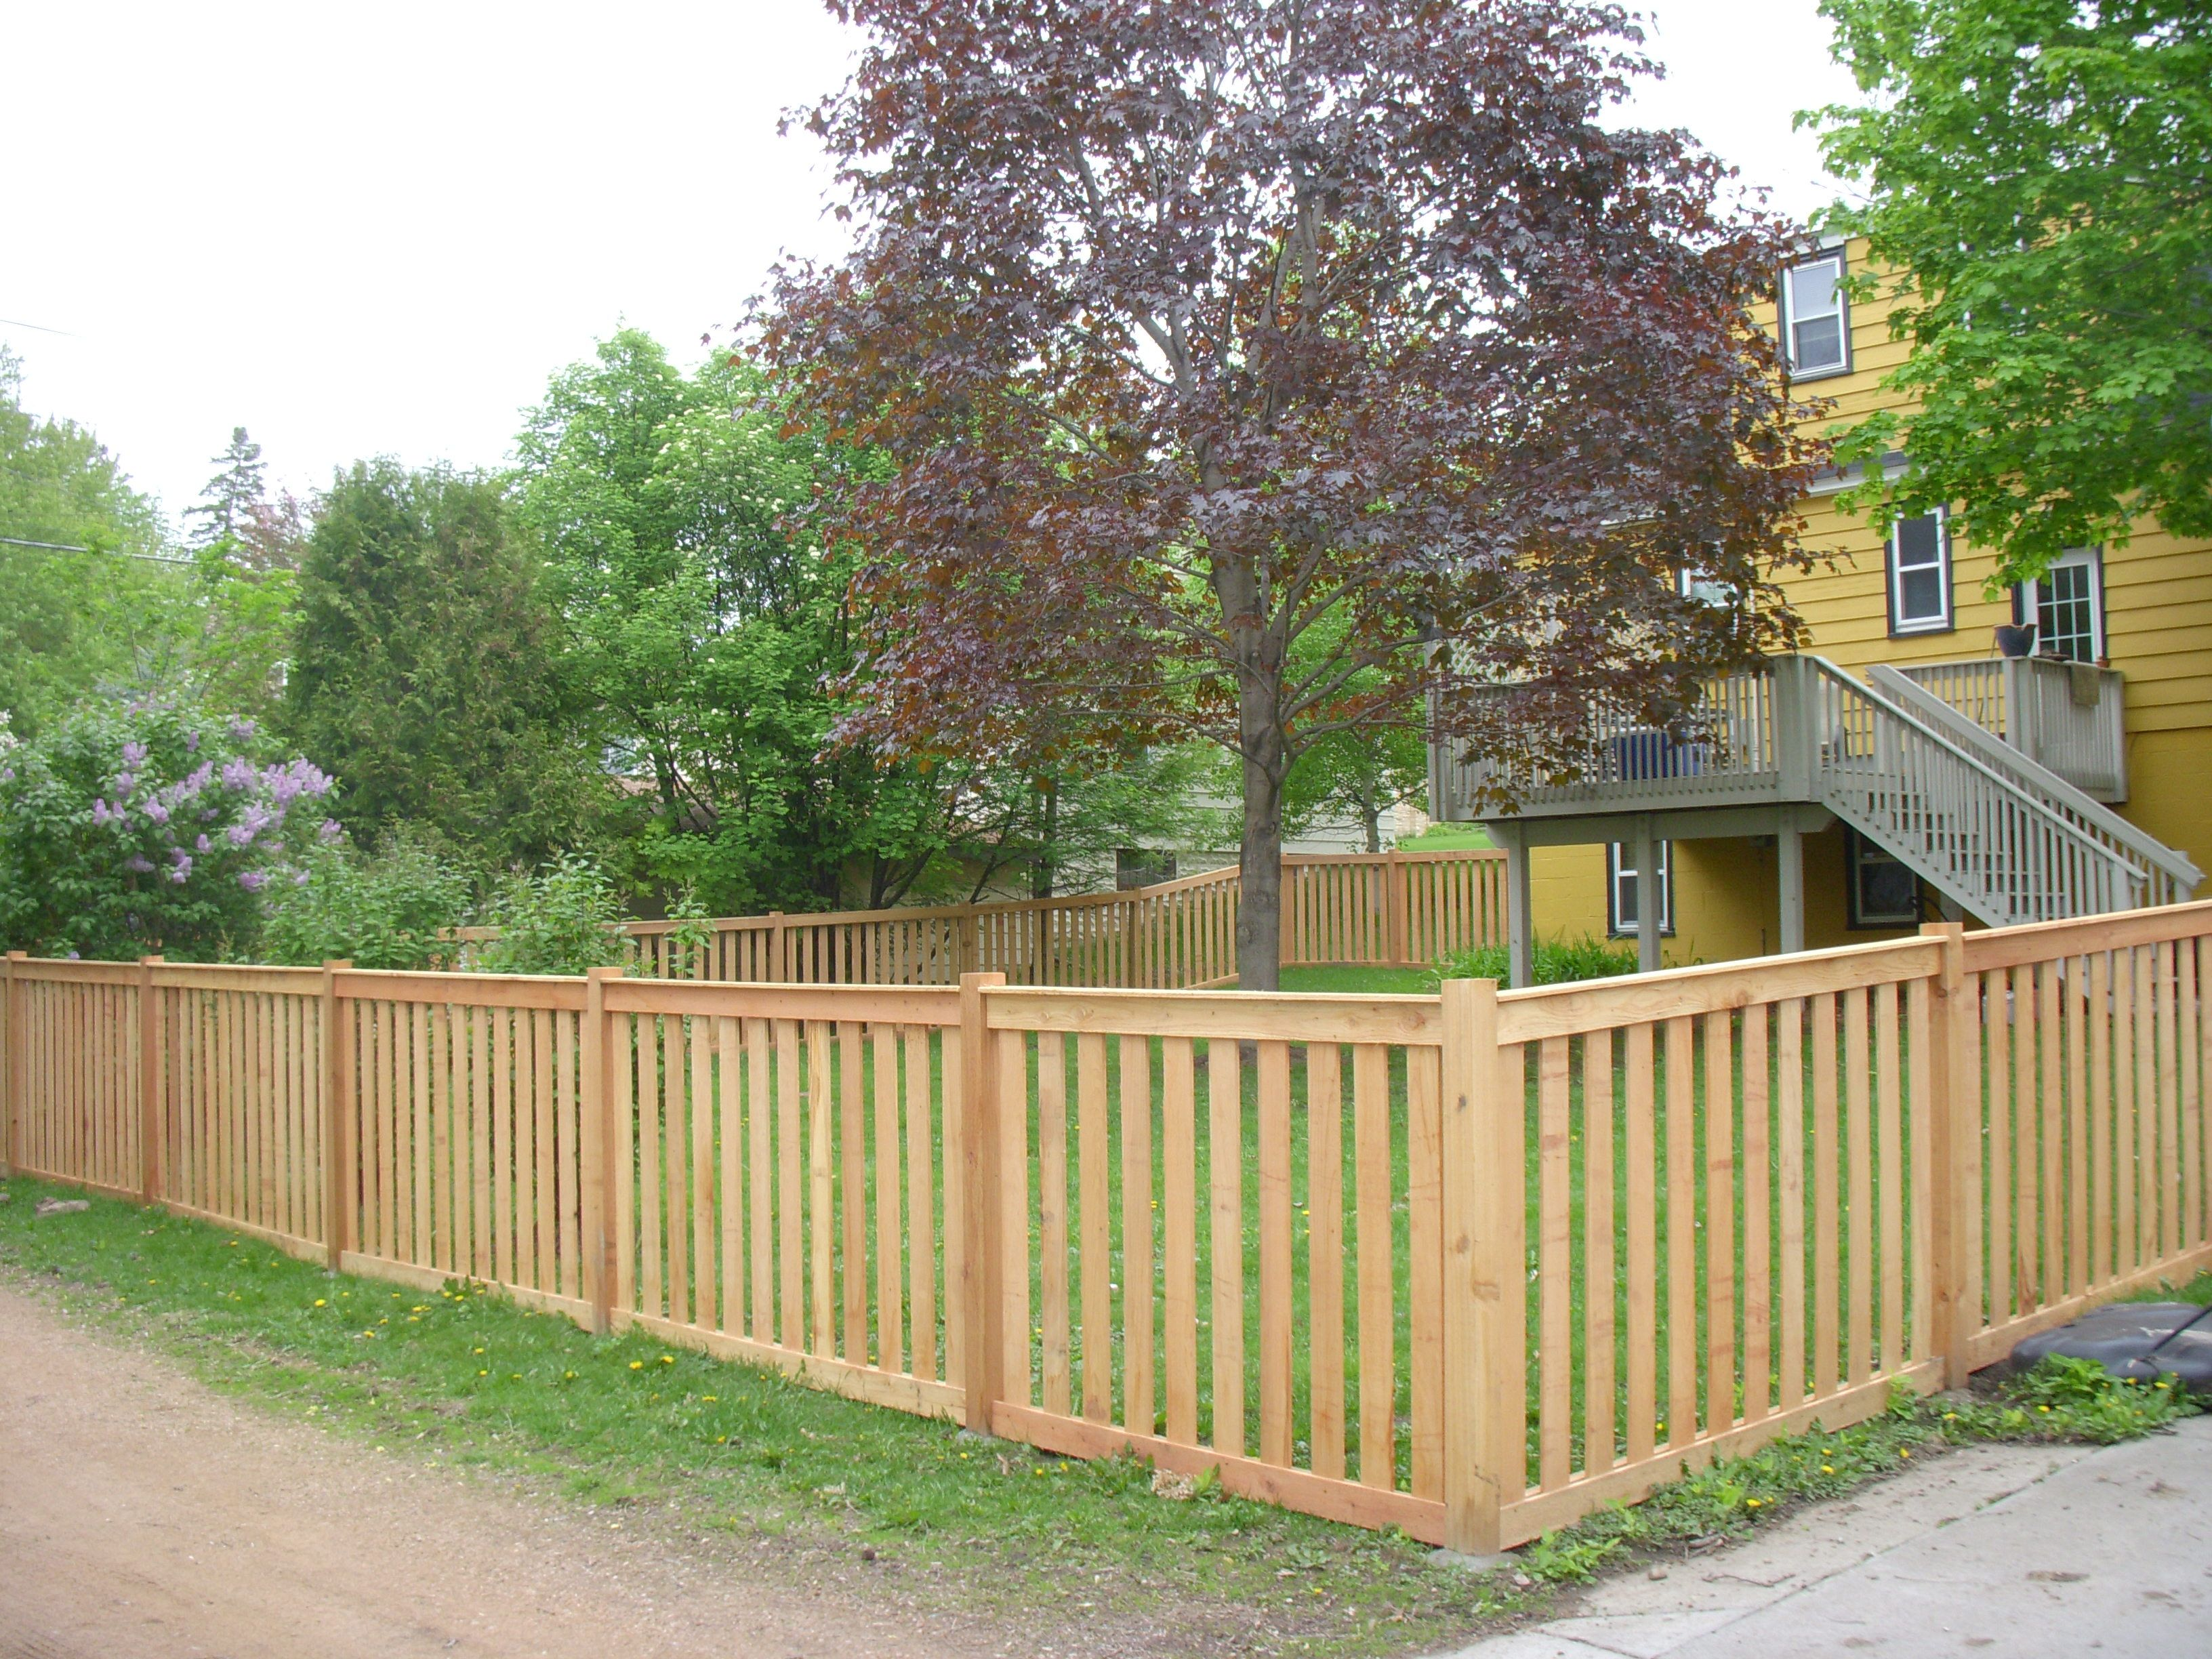 4 Ft Wood Picket Fence Panels Privacy Fence Designs Wood Picket Fence Wood Fence Design